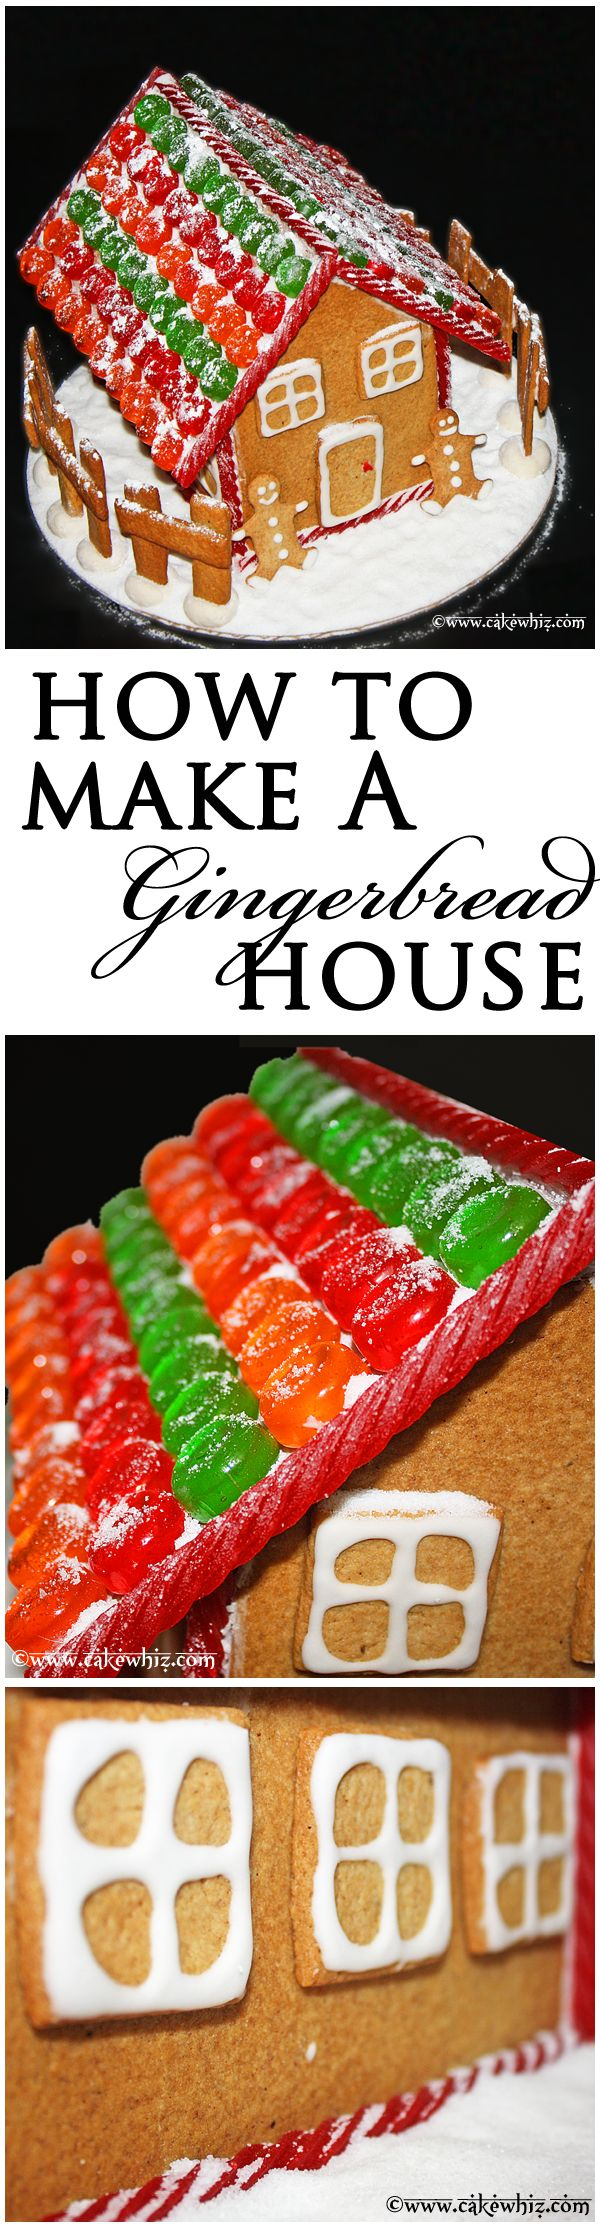 GINGERBREAD HOUSE... This step-by-step tutorial will show you that making gingerbread houses is easy and fun! From cakewhiz.com